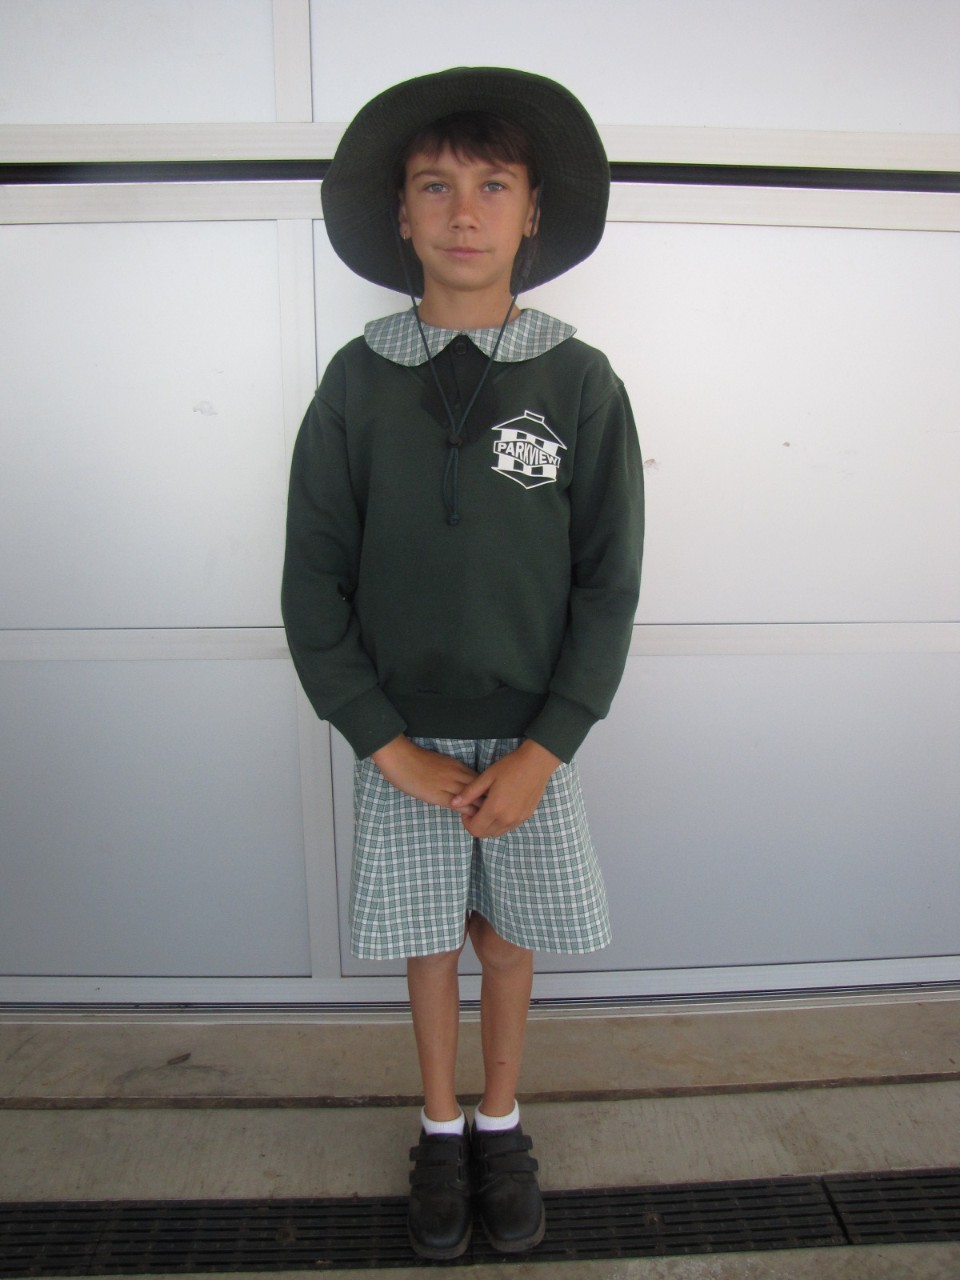 Girls Summer uniform with jumper and hat.